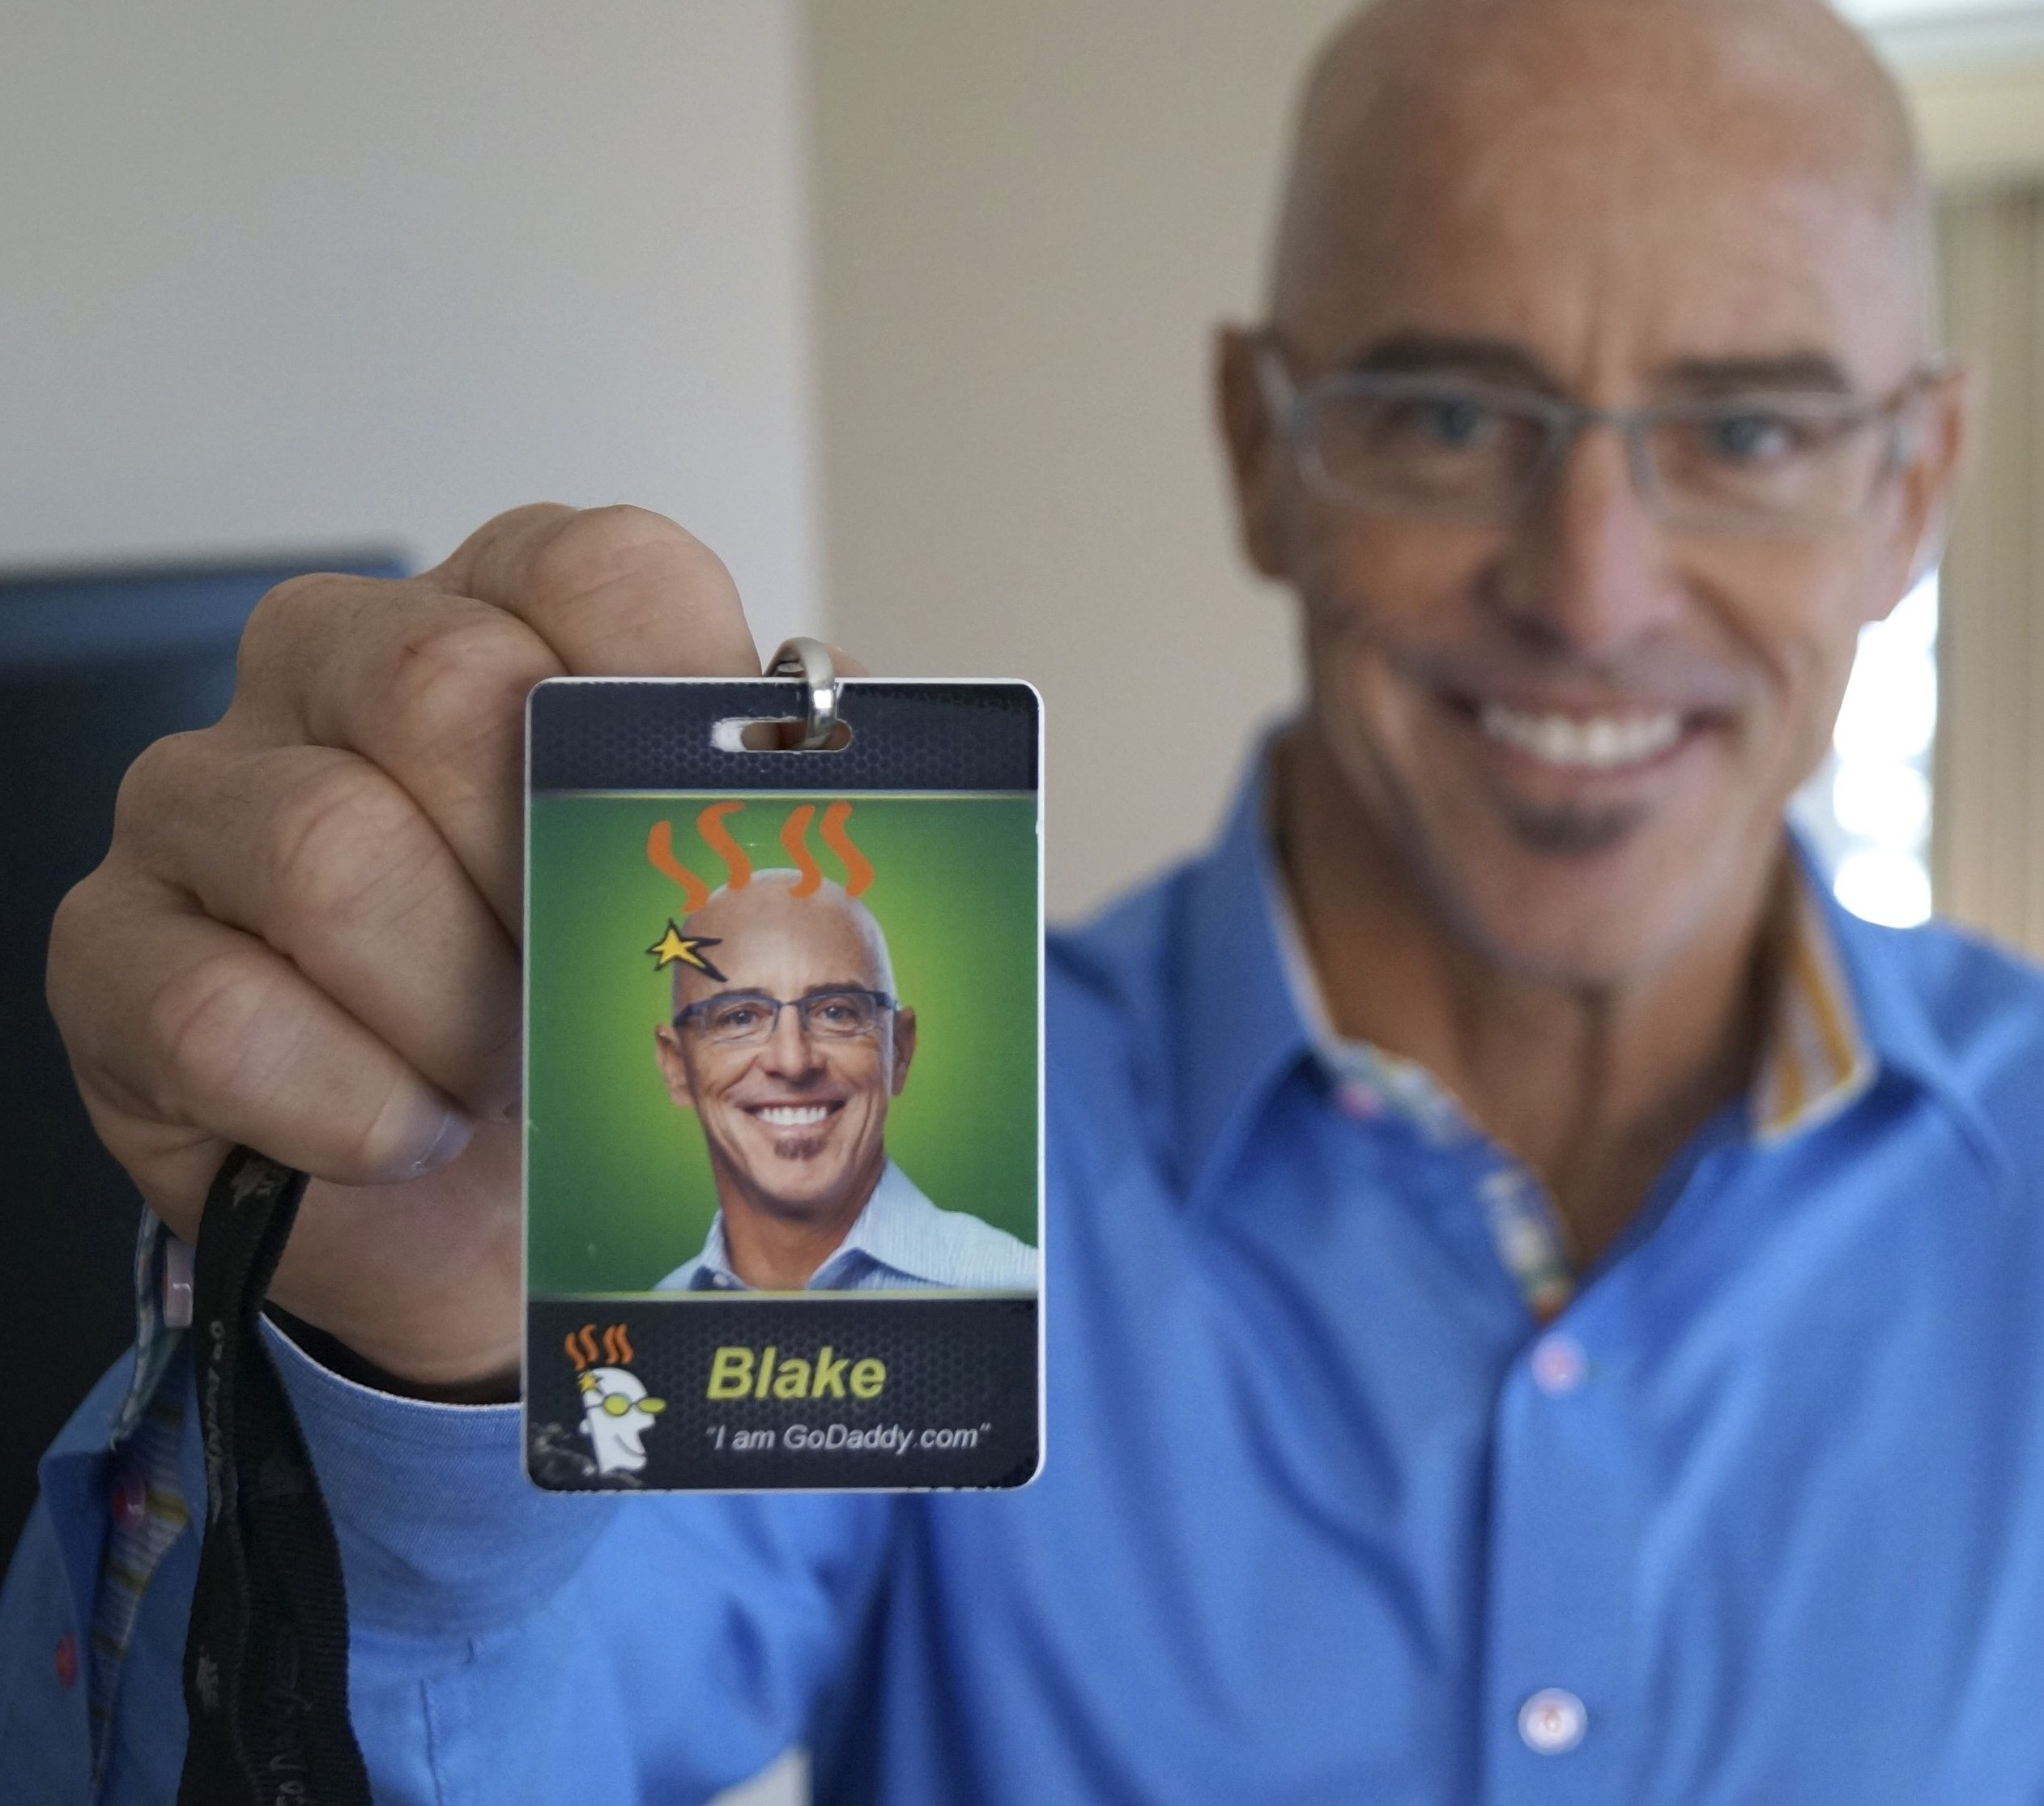 GoDaddy CEO Blake Irving will provide feedback to entrepreneurs on Flare, as part of its launch.